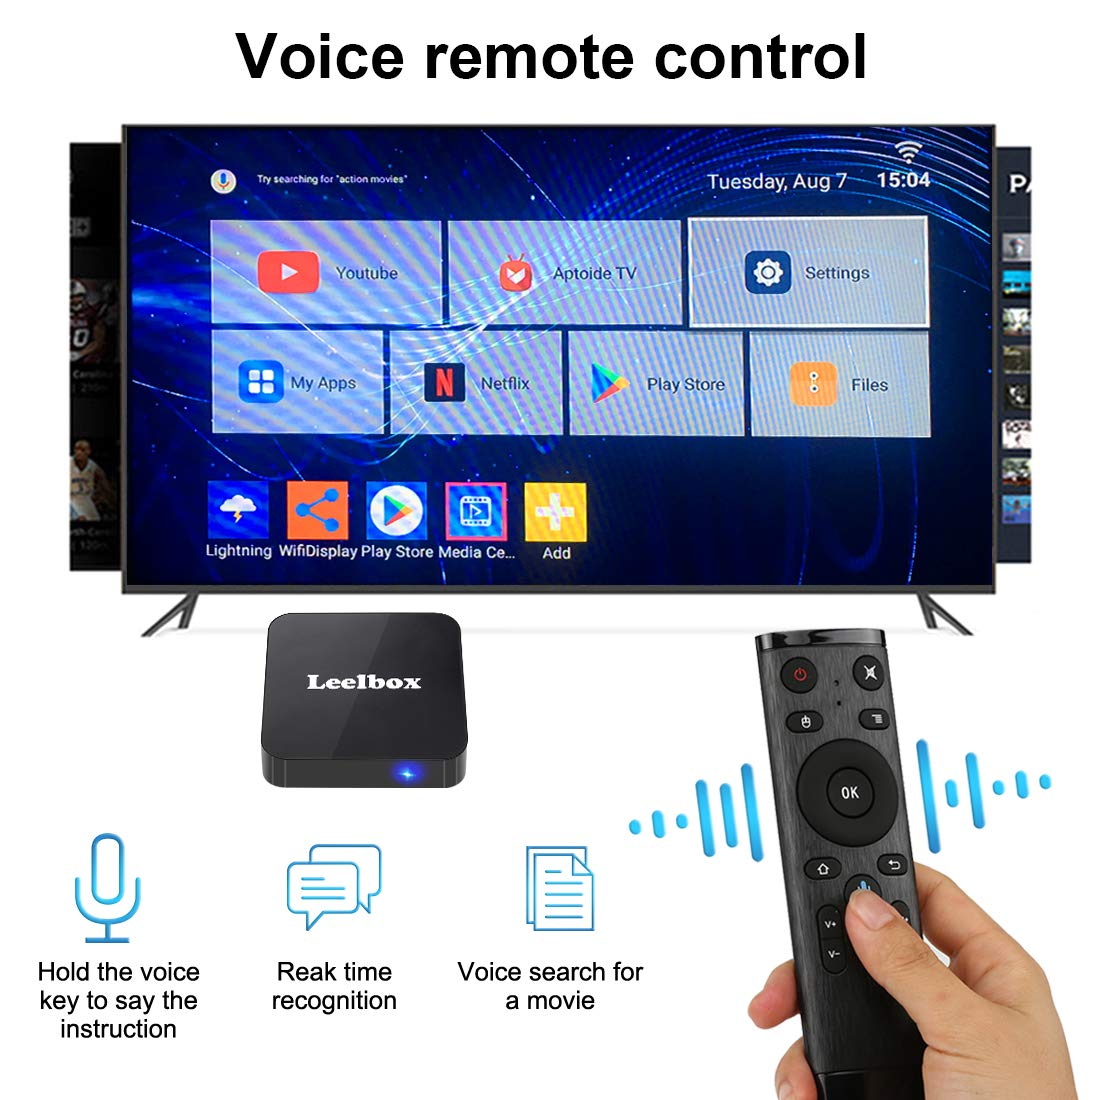 Android 8.1 TV Box, 2018 Leelbox Q2 Android Box Quad Core with 2GB RAM 16GB ROM, 2.4G Voice Remote Control Included, Support WiFi/3D/4K/H.265 by Leelbox (Image #3)